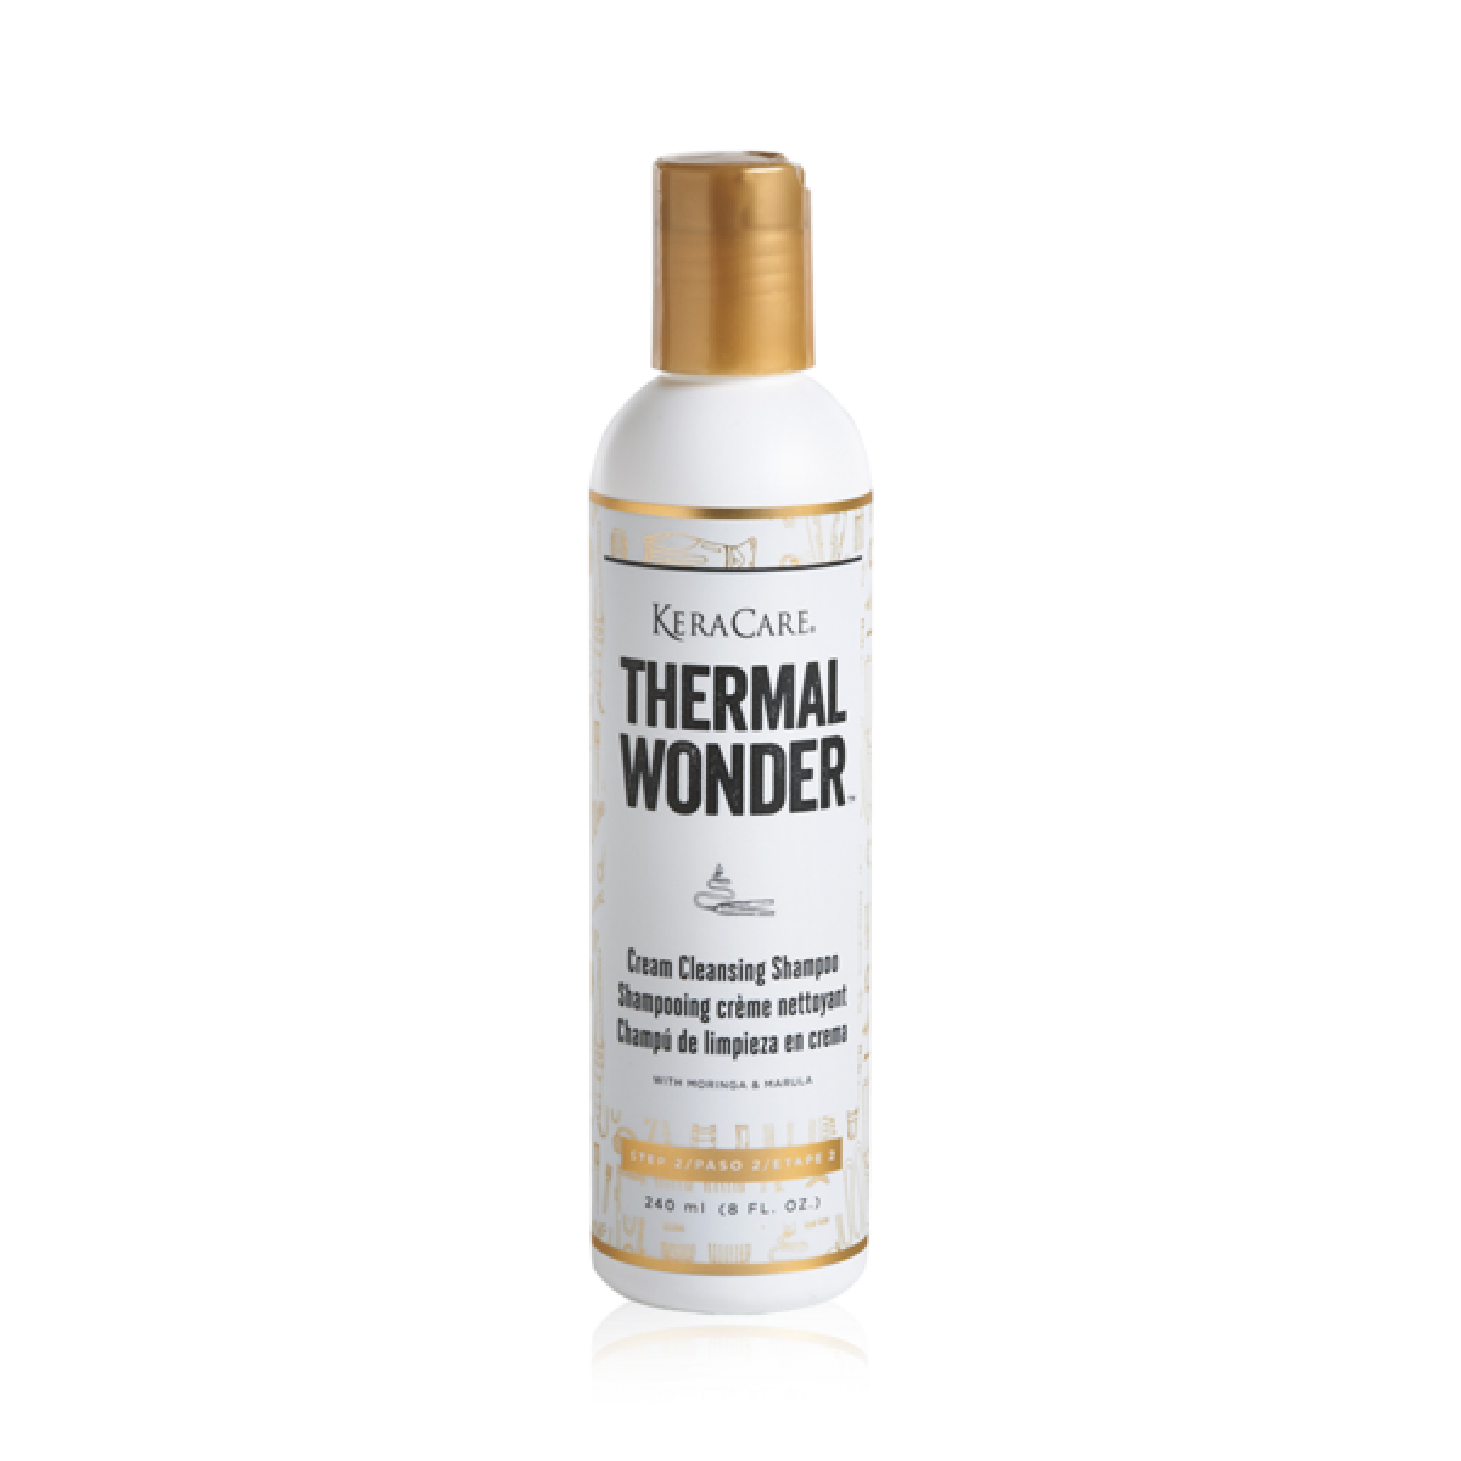 keracare-product-image-Cleansing-Shampoo_600x